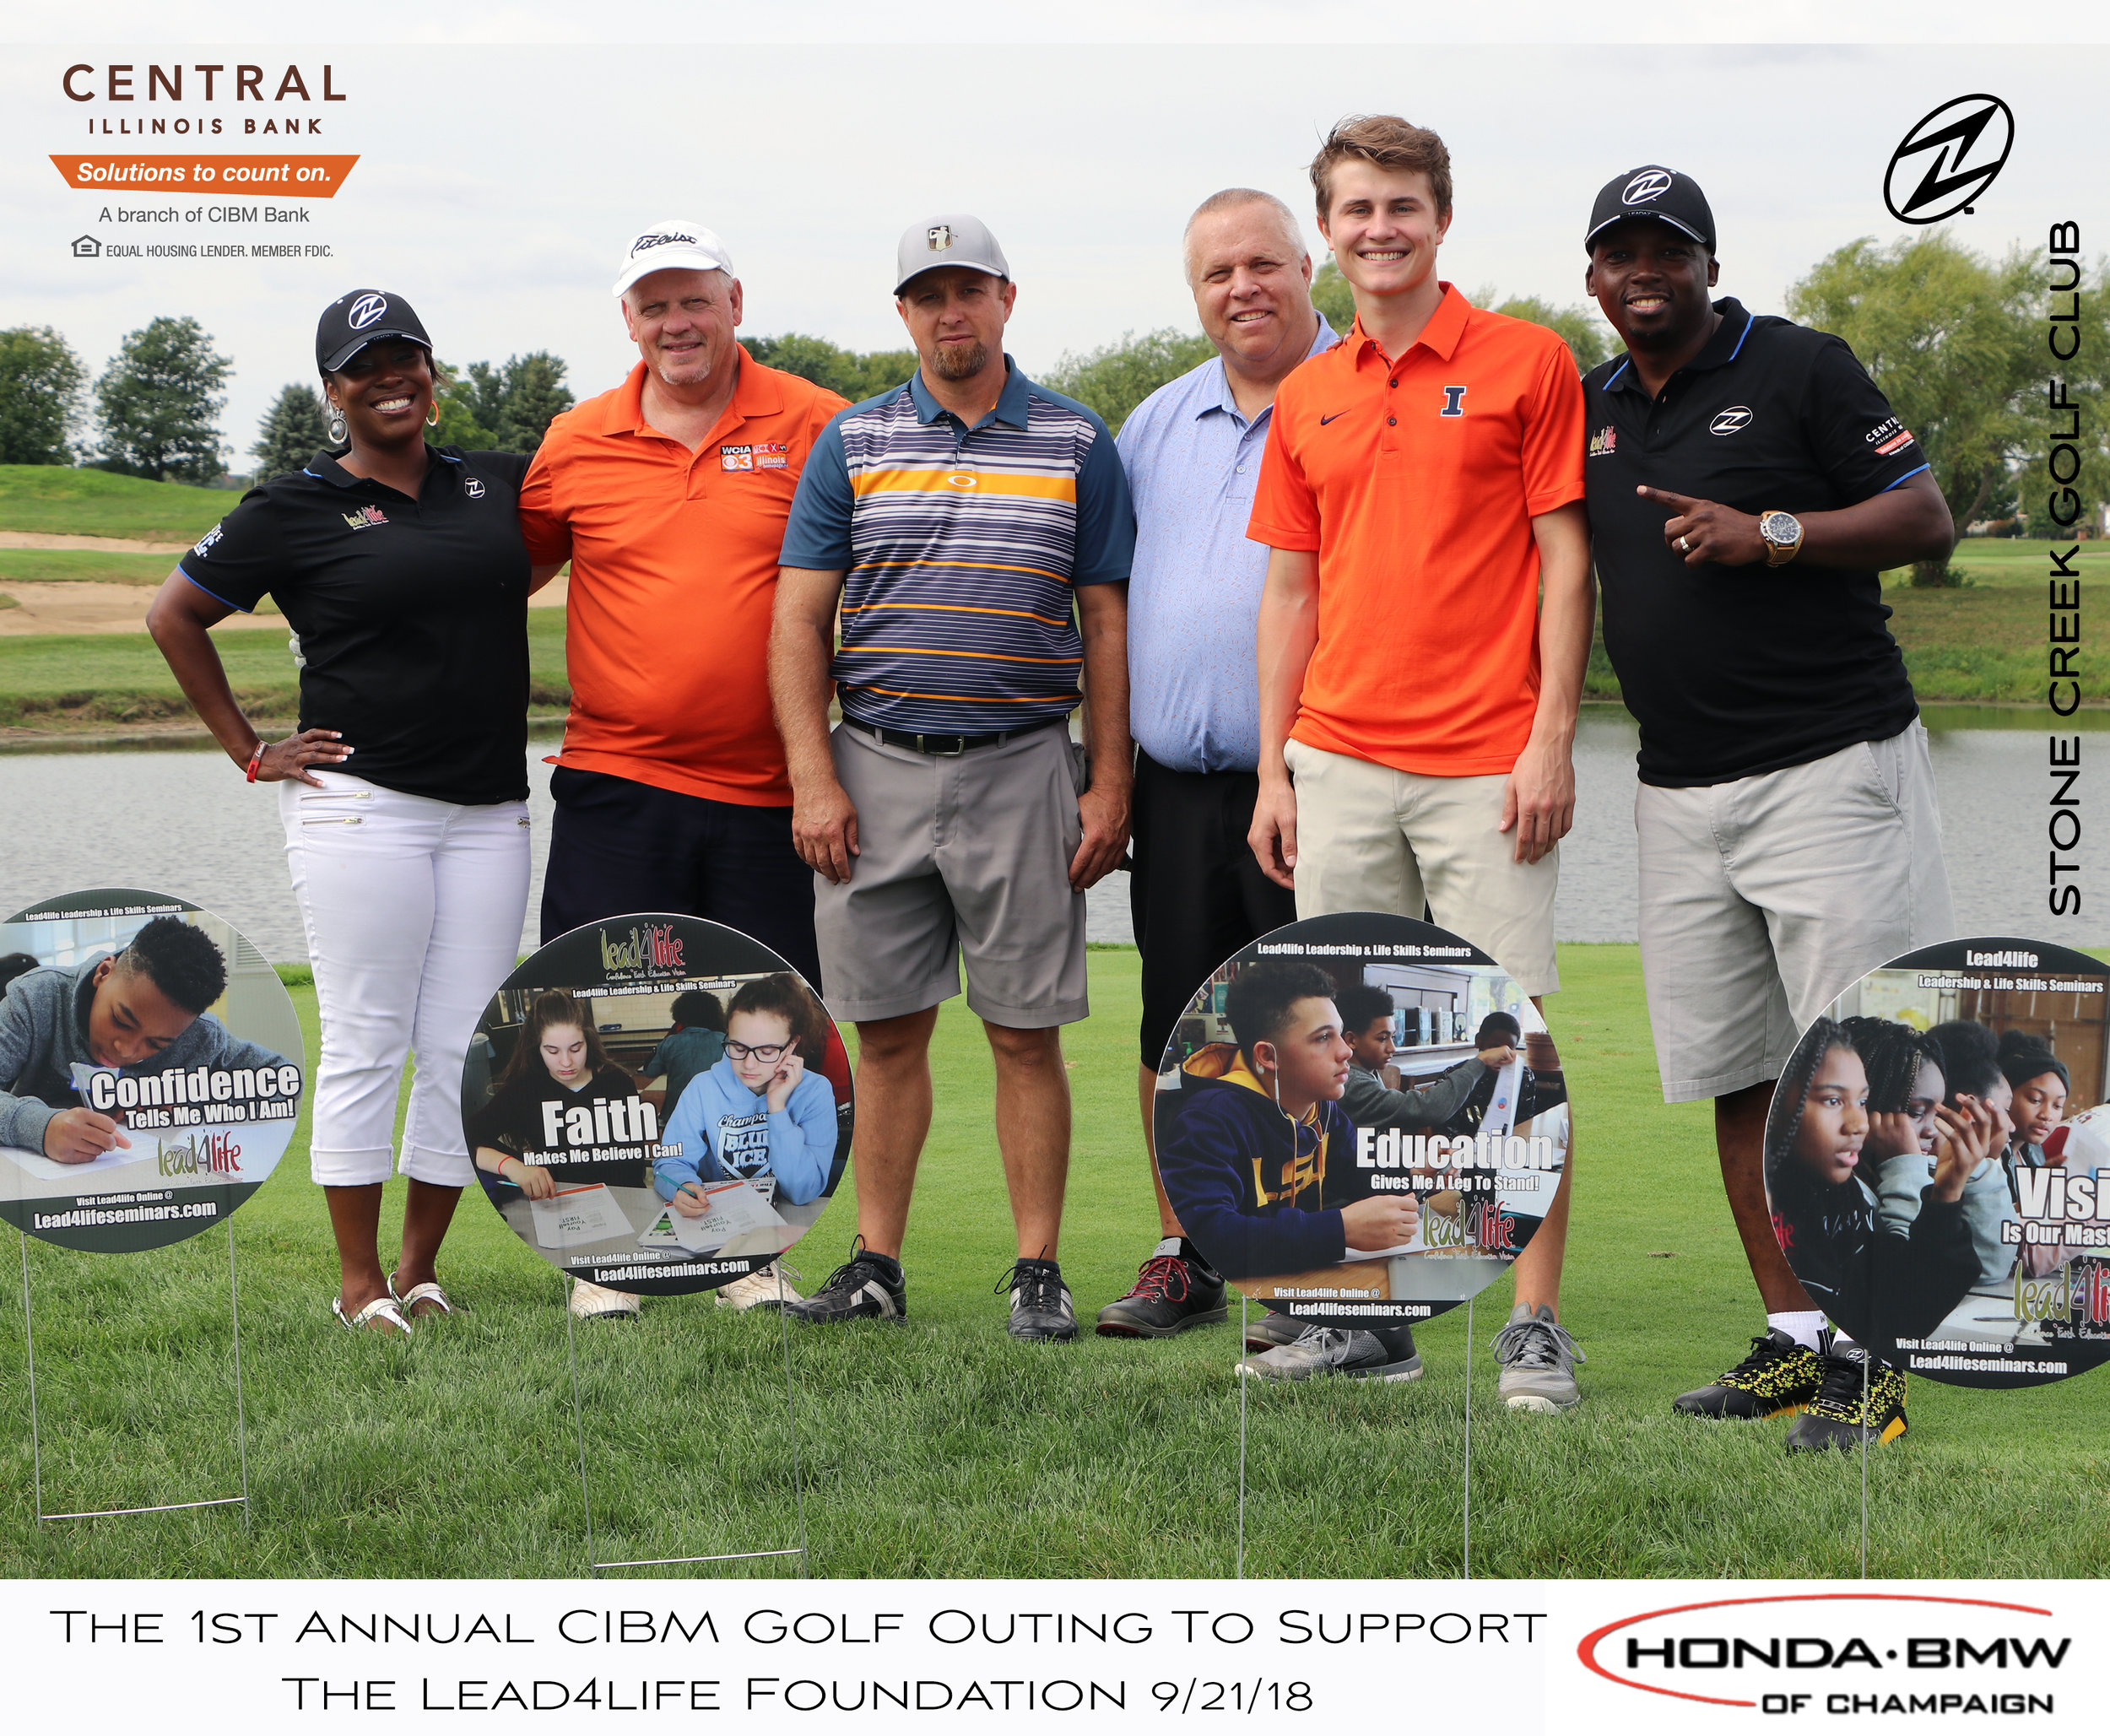 Lead4life Golf Group 4.jpg